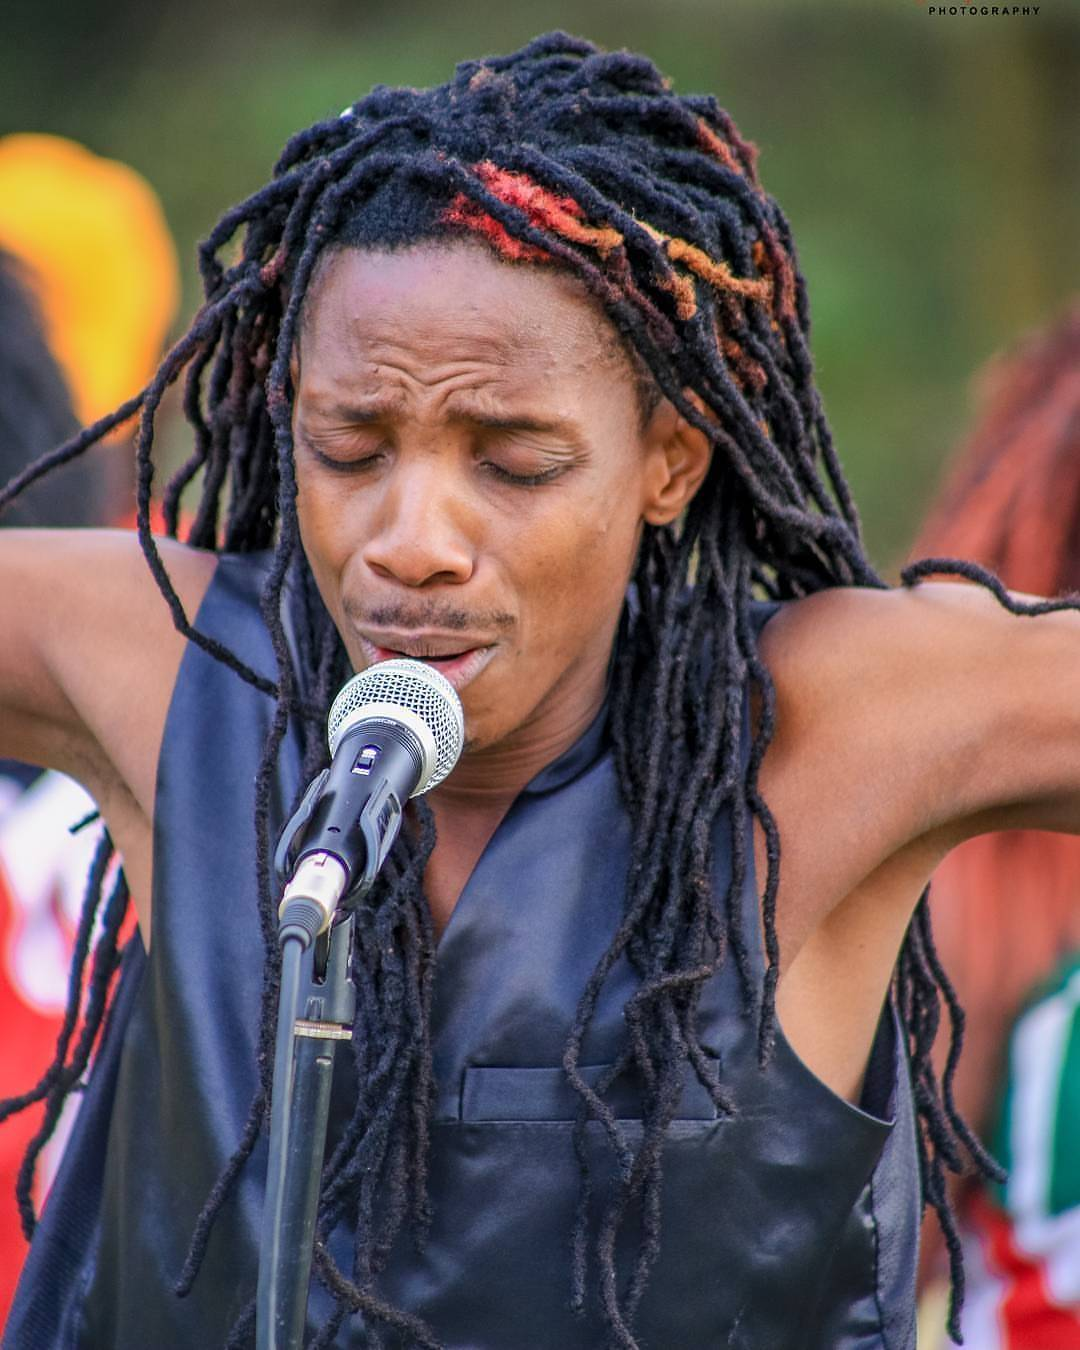 26158240 1502091173244482 4854583315417530368 n - 'Best comedian in Africa' Eric Omondi hits out at vocal Akothee critic